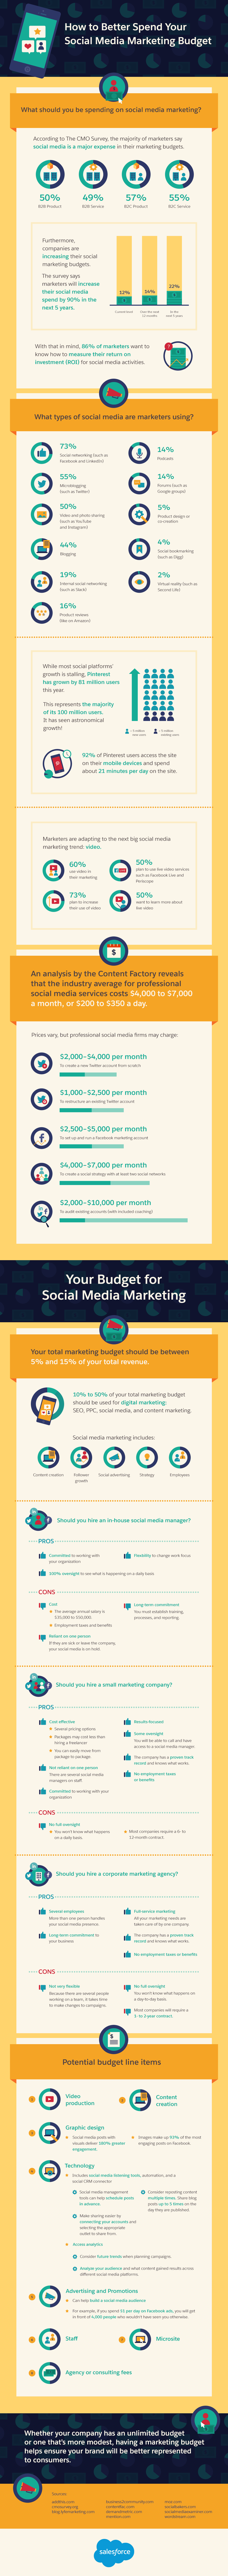 social-media-budget-infographic